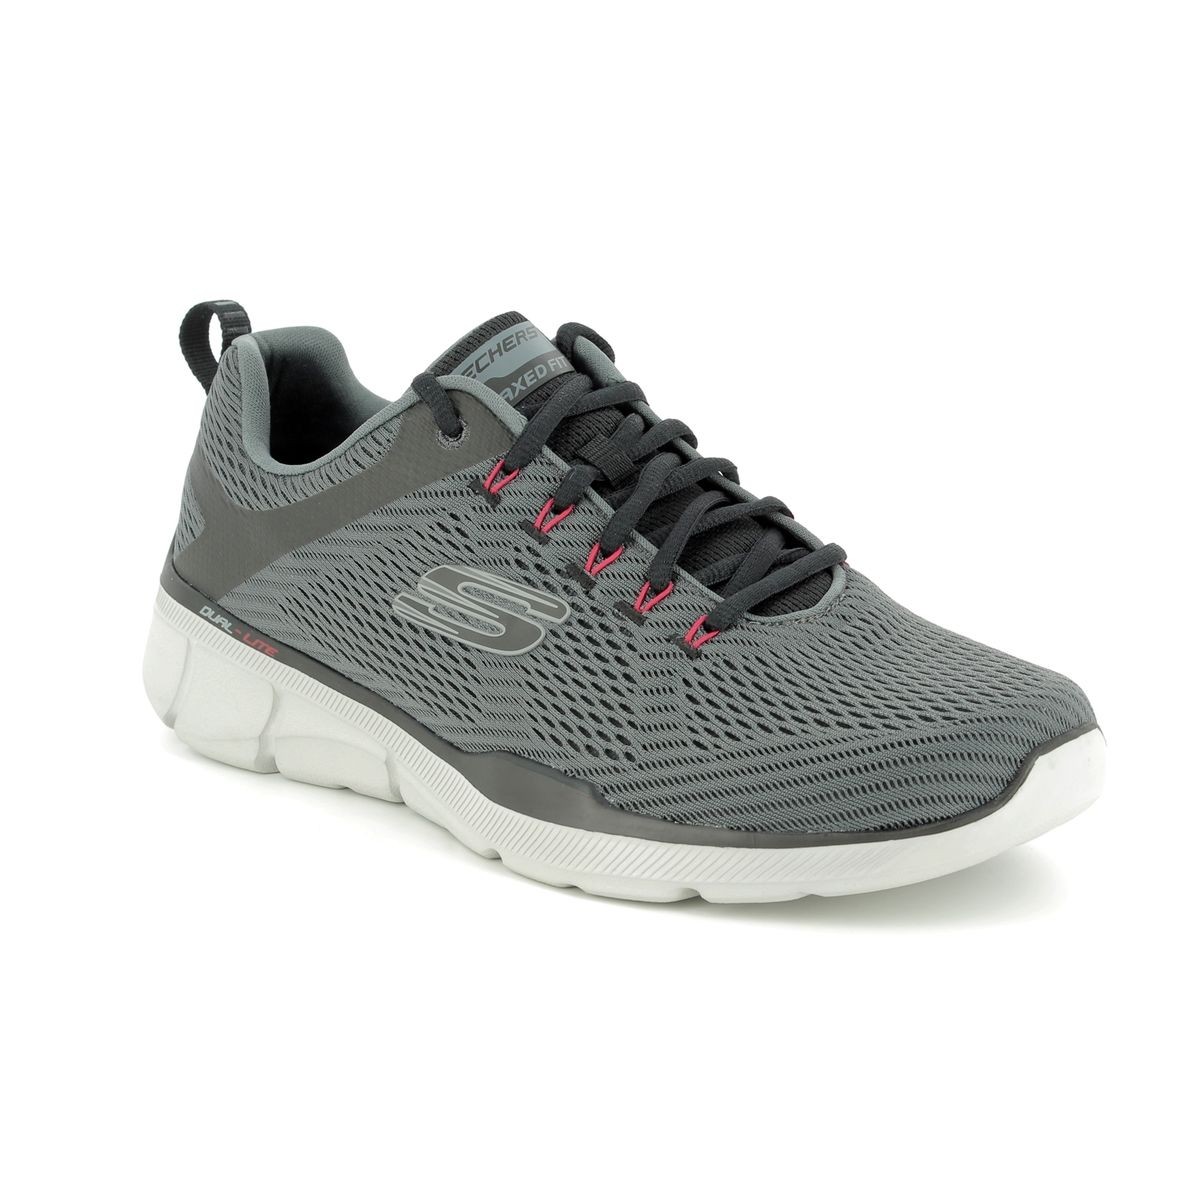 521e810c3e945 Skechers Equalizer 3.0 52927 CCBK Grey trainers